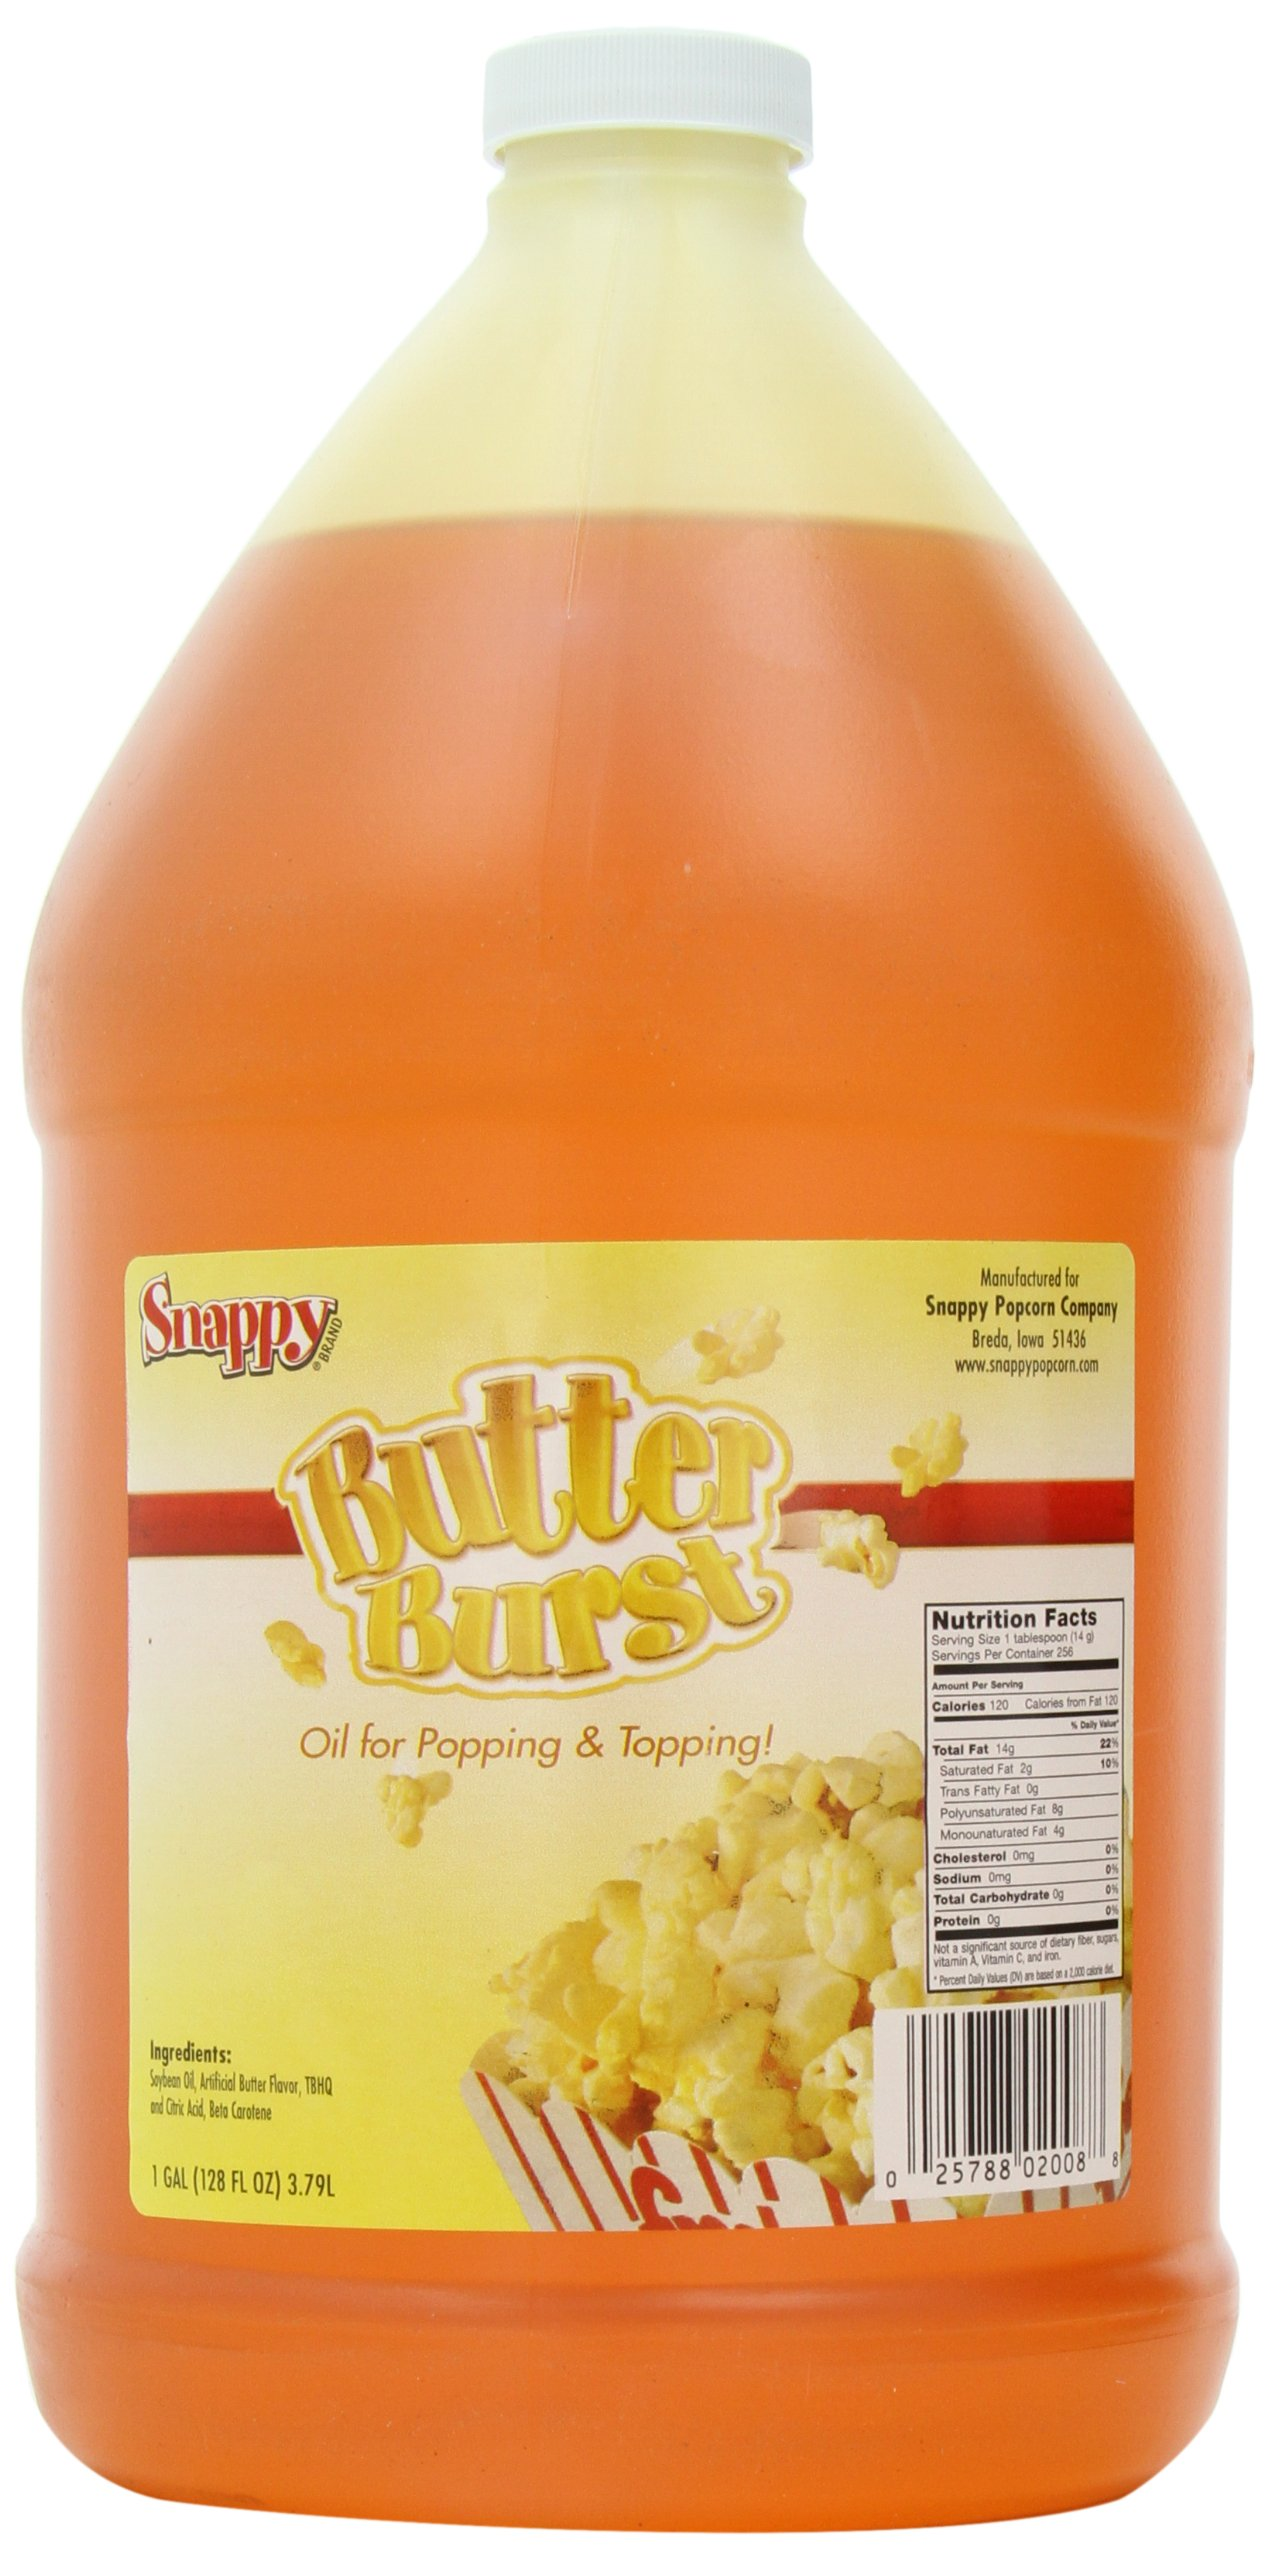 Snappy Popcorn Butter Burst Oil , 1 gallon( 128 fl oz )